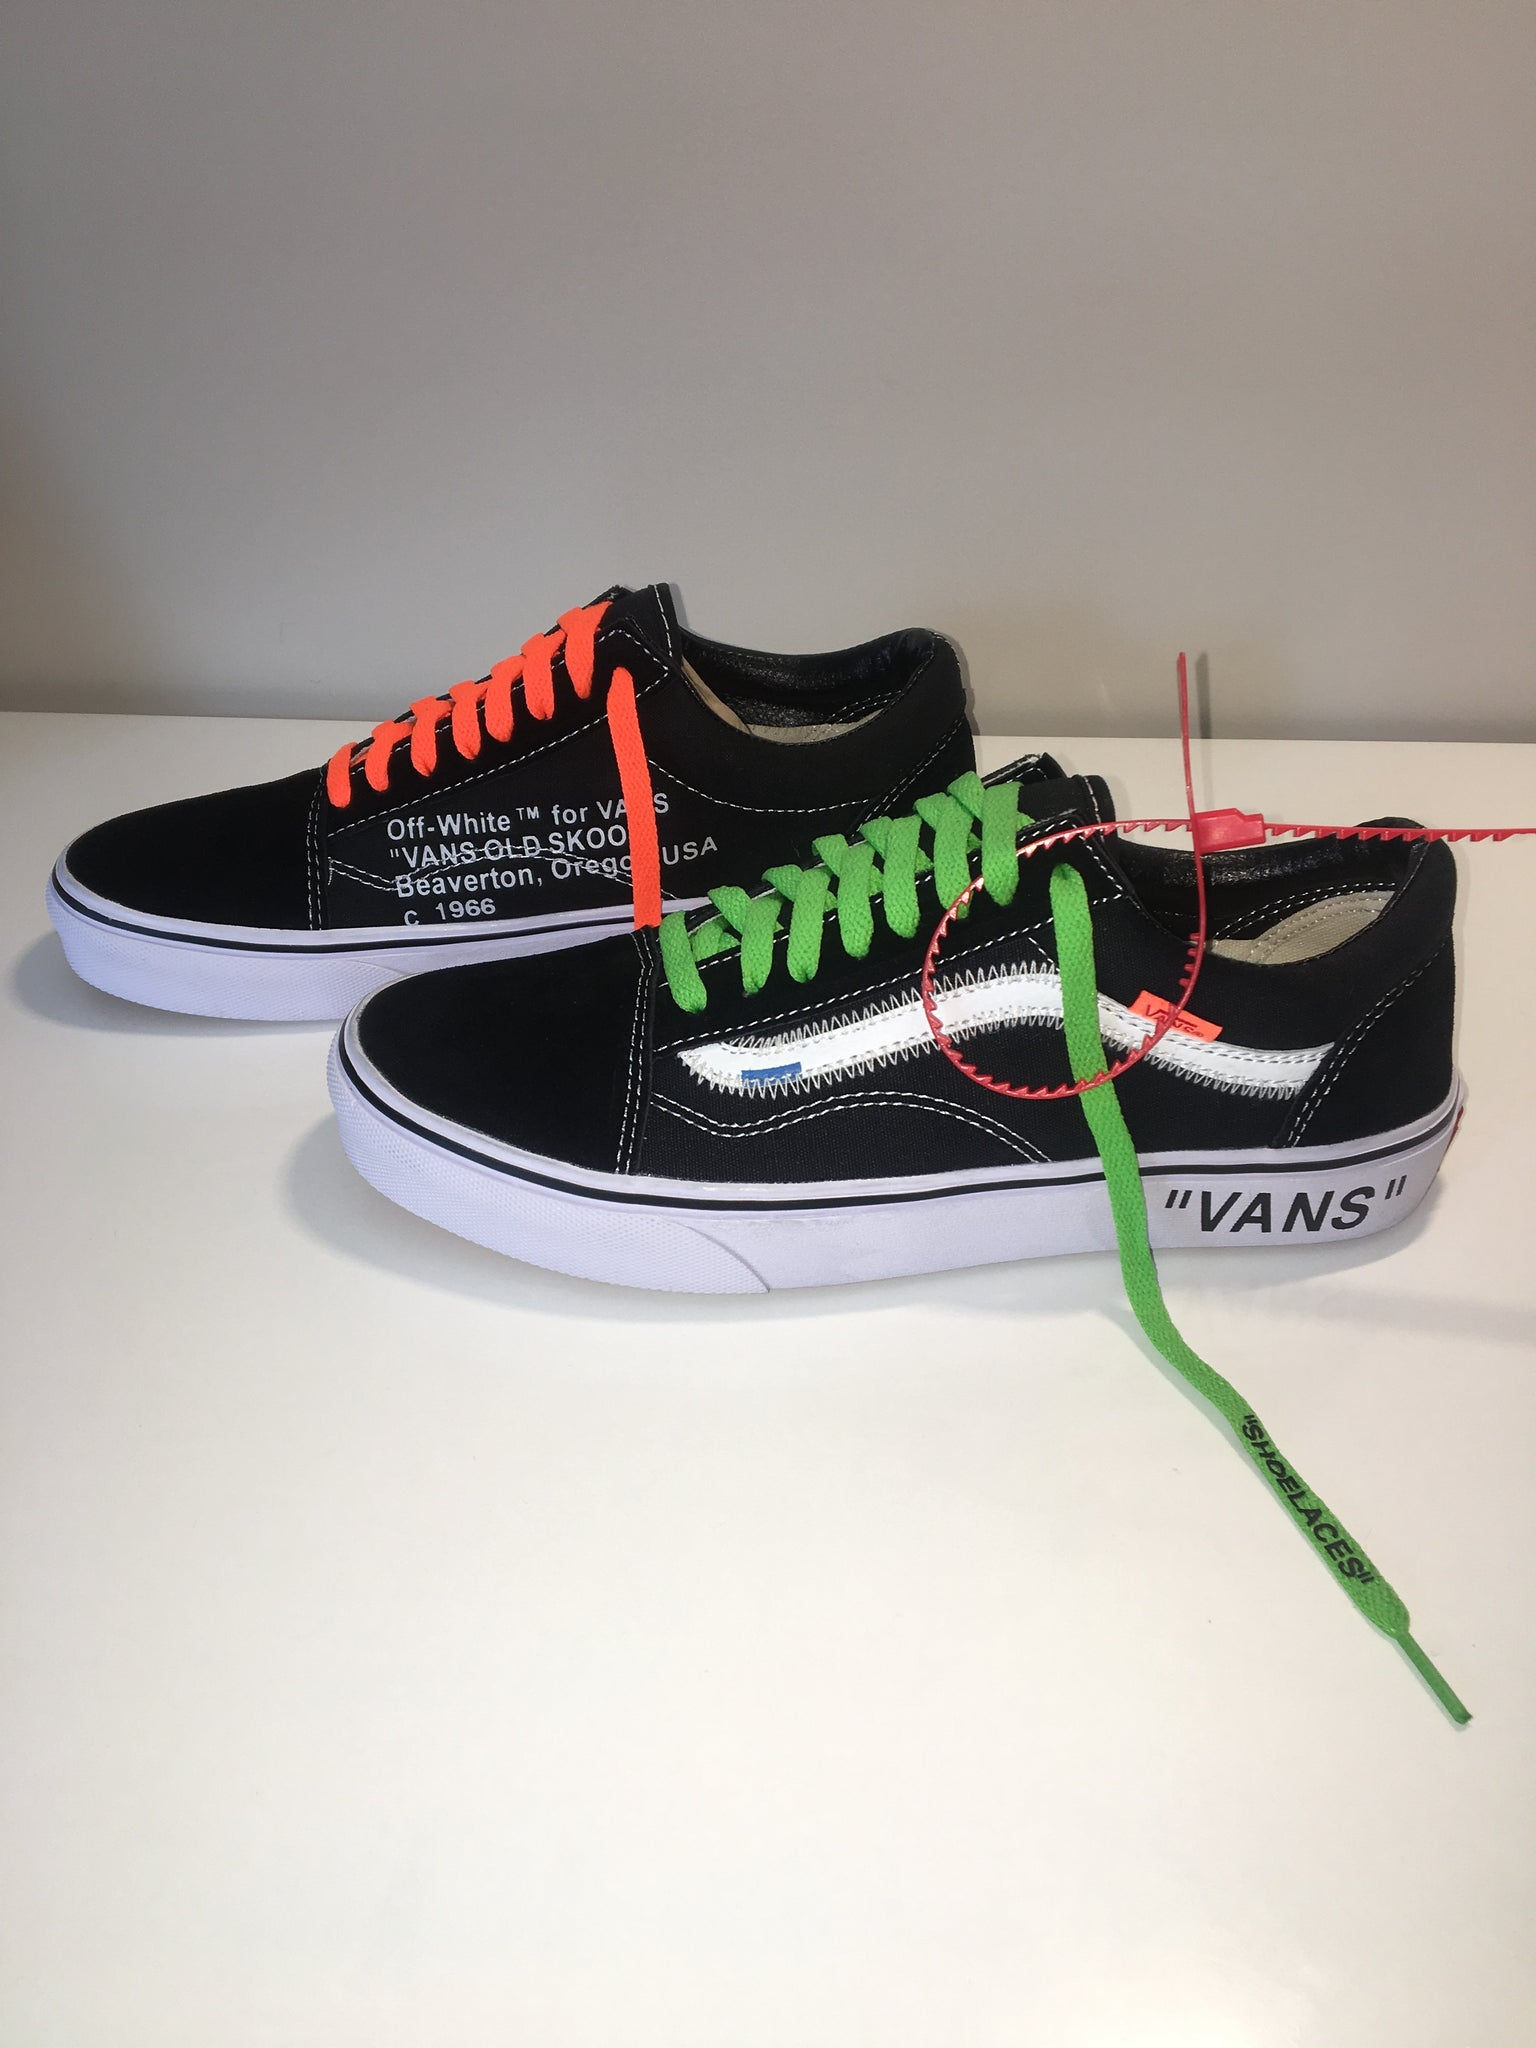 vans x off white slip on